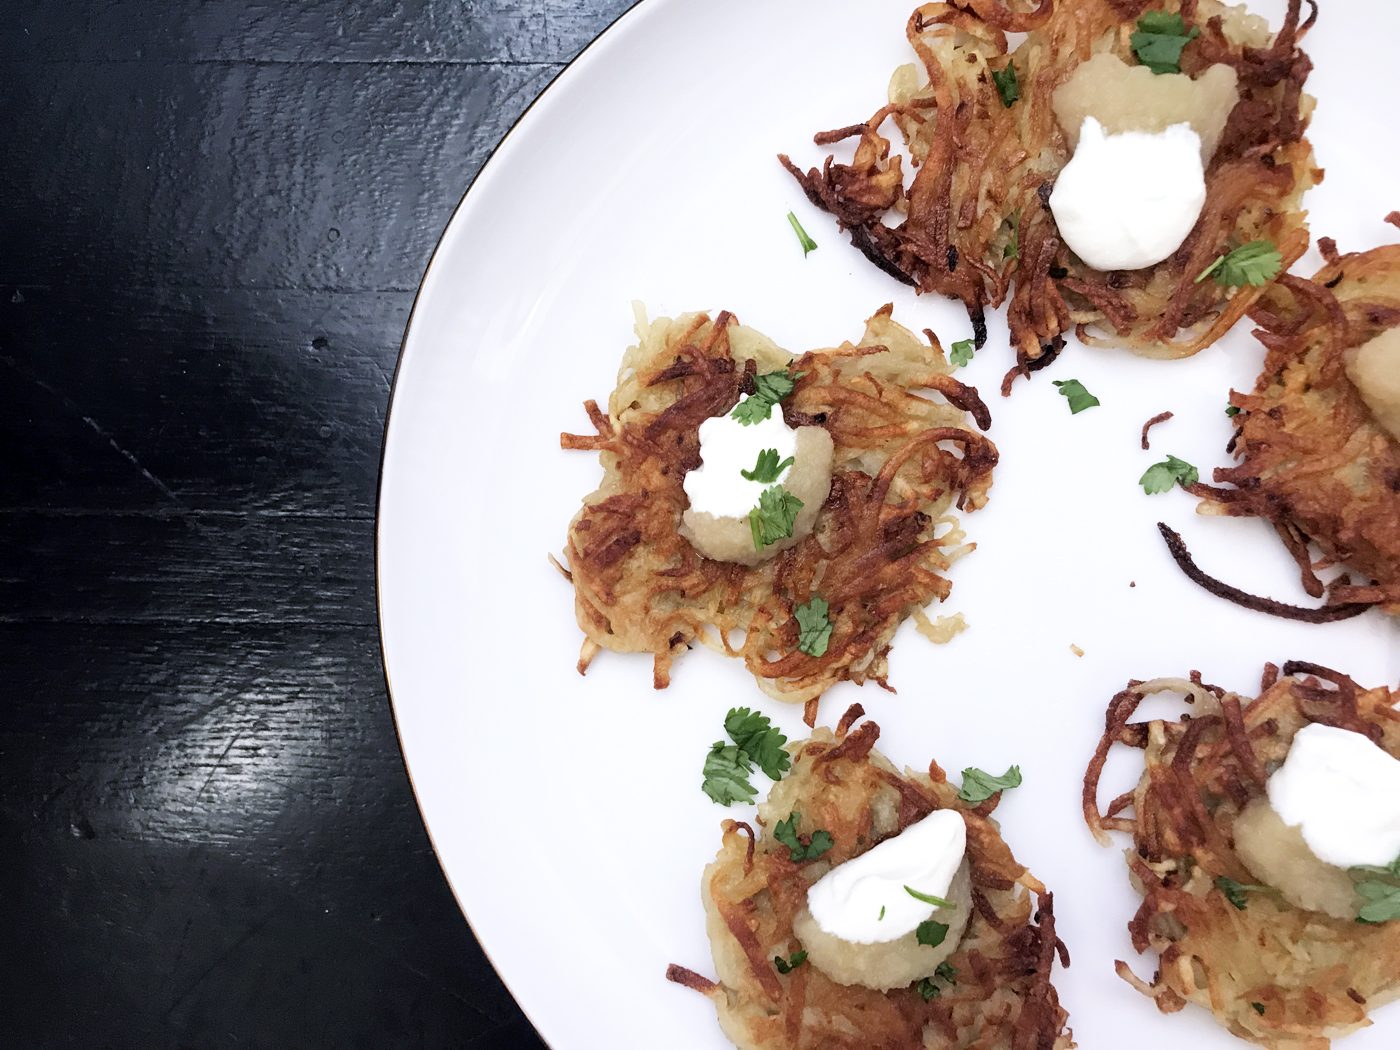 Things Alexa can do during the holidays: Give you recipes for leftover latkes | Photo (c) Stacie Billis for Cool Mom Tech